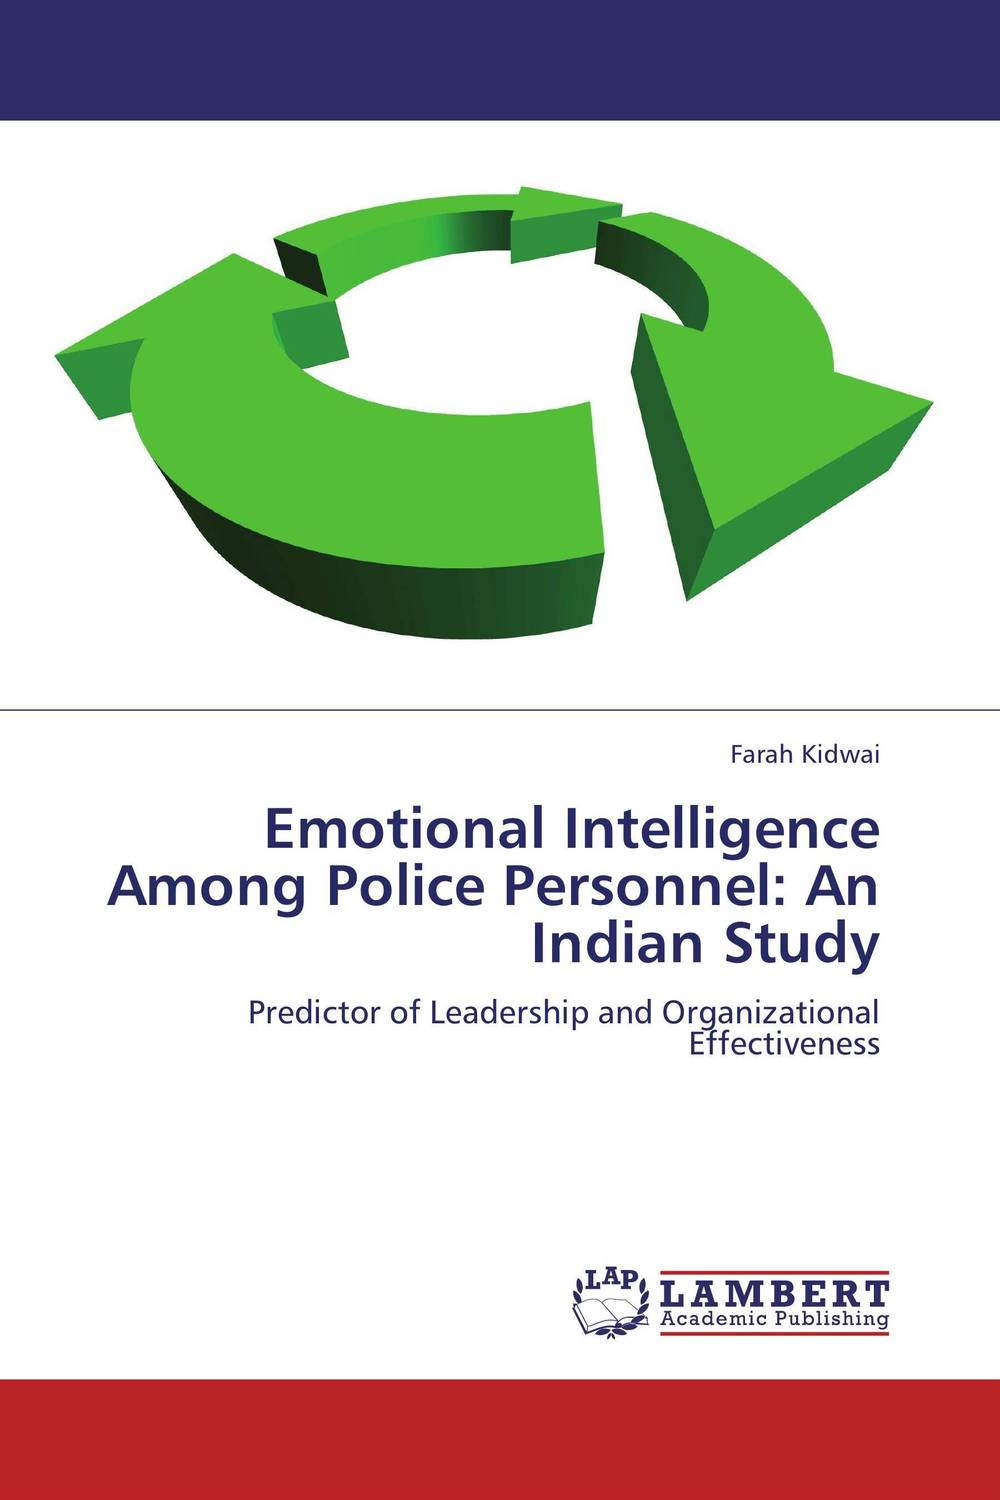 Emotional Intelligence Among Police Personnel: An Indian Study